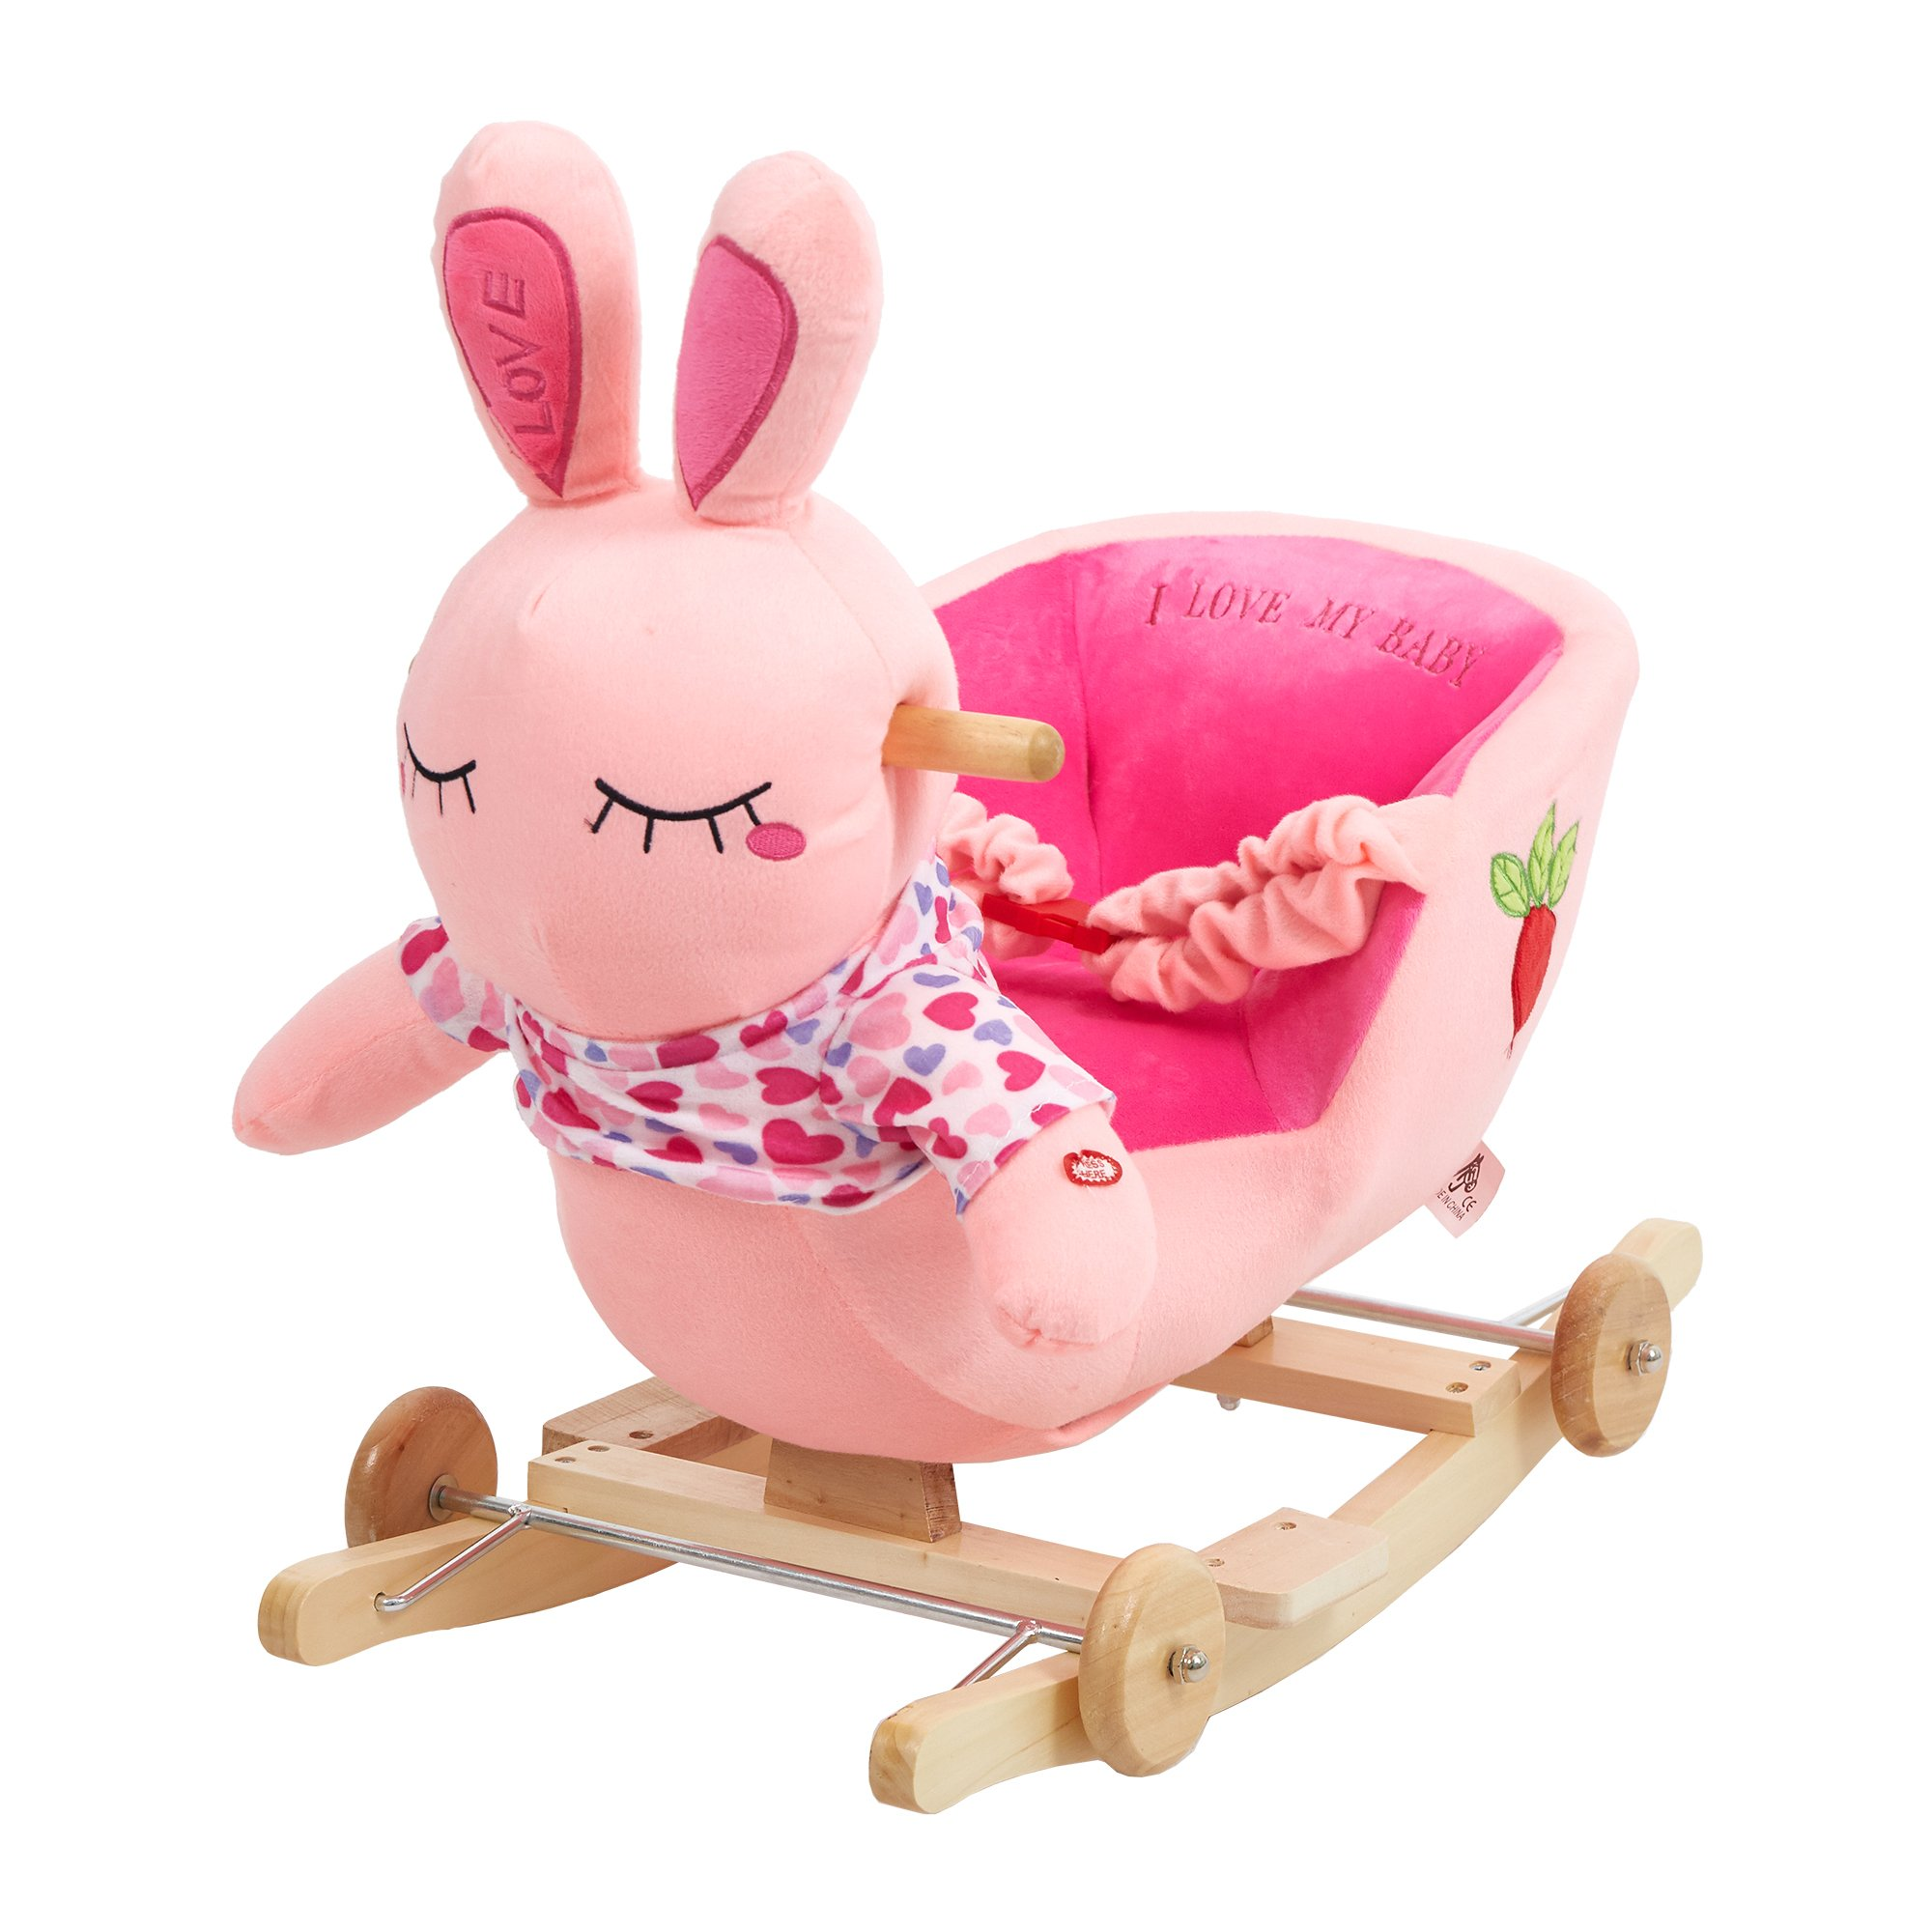 Dporticus Child Rocking Horse Plush Rabbit Rocker Toy with Wheels and Seat Belt Wooden Rocking Horse/Kid Rocking Toy/Baby Rocking Horse/Rocker/Animal Ride On